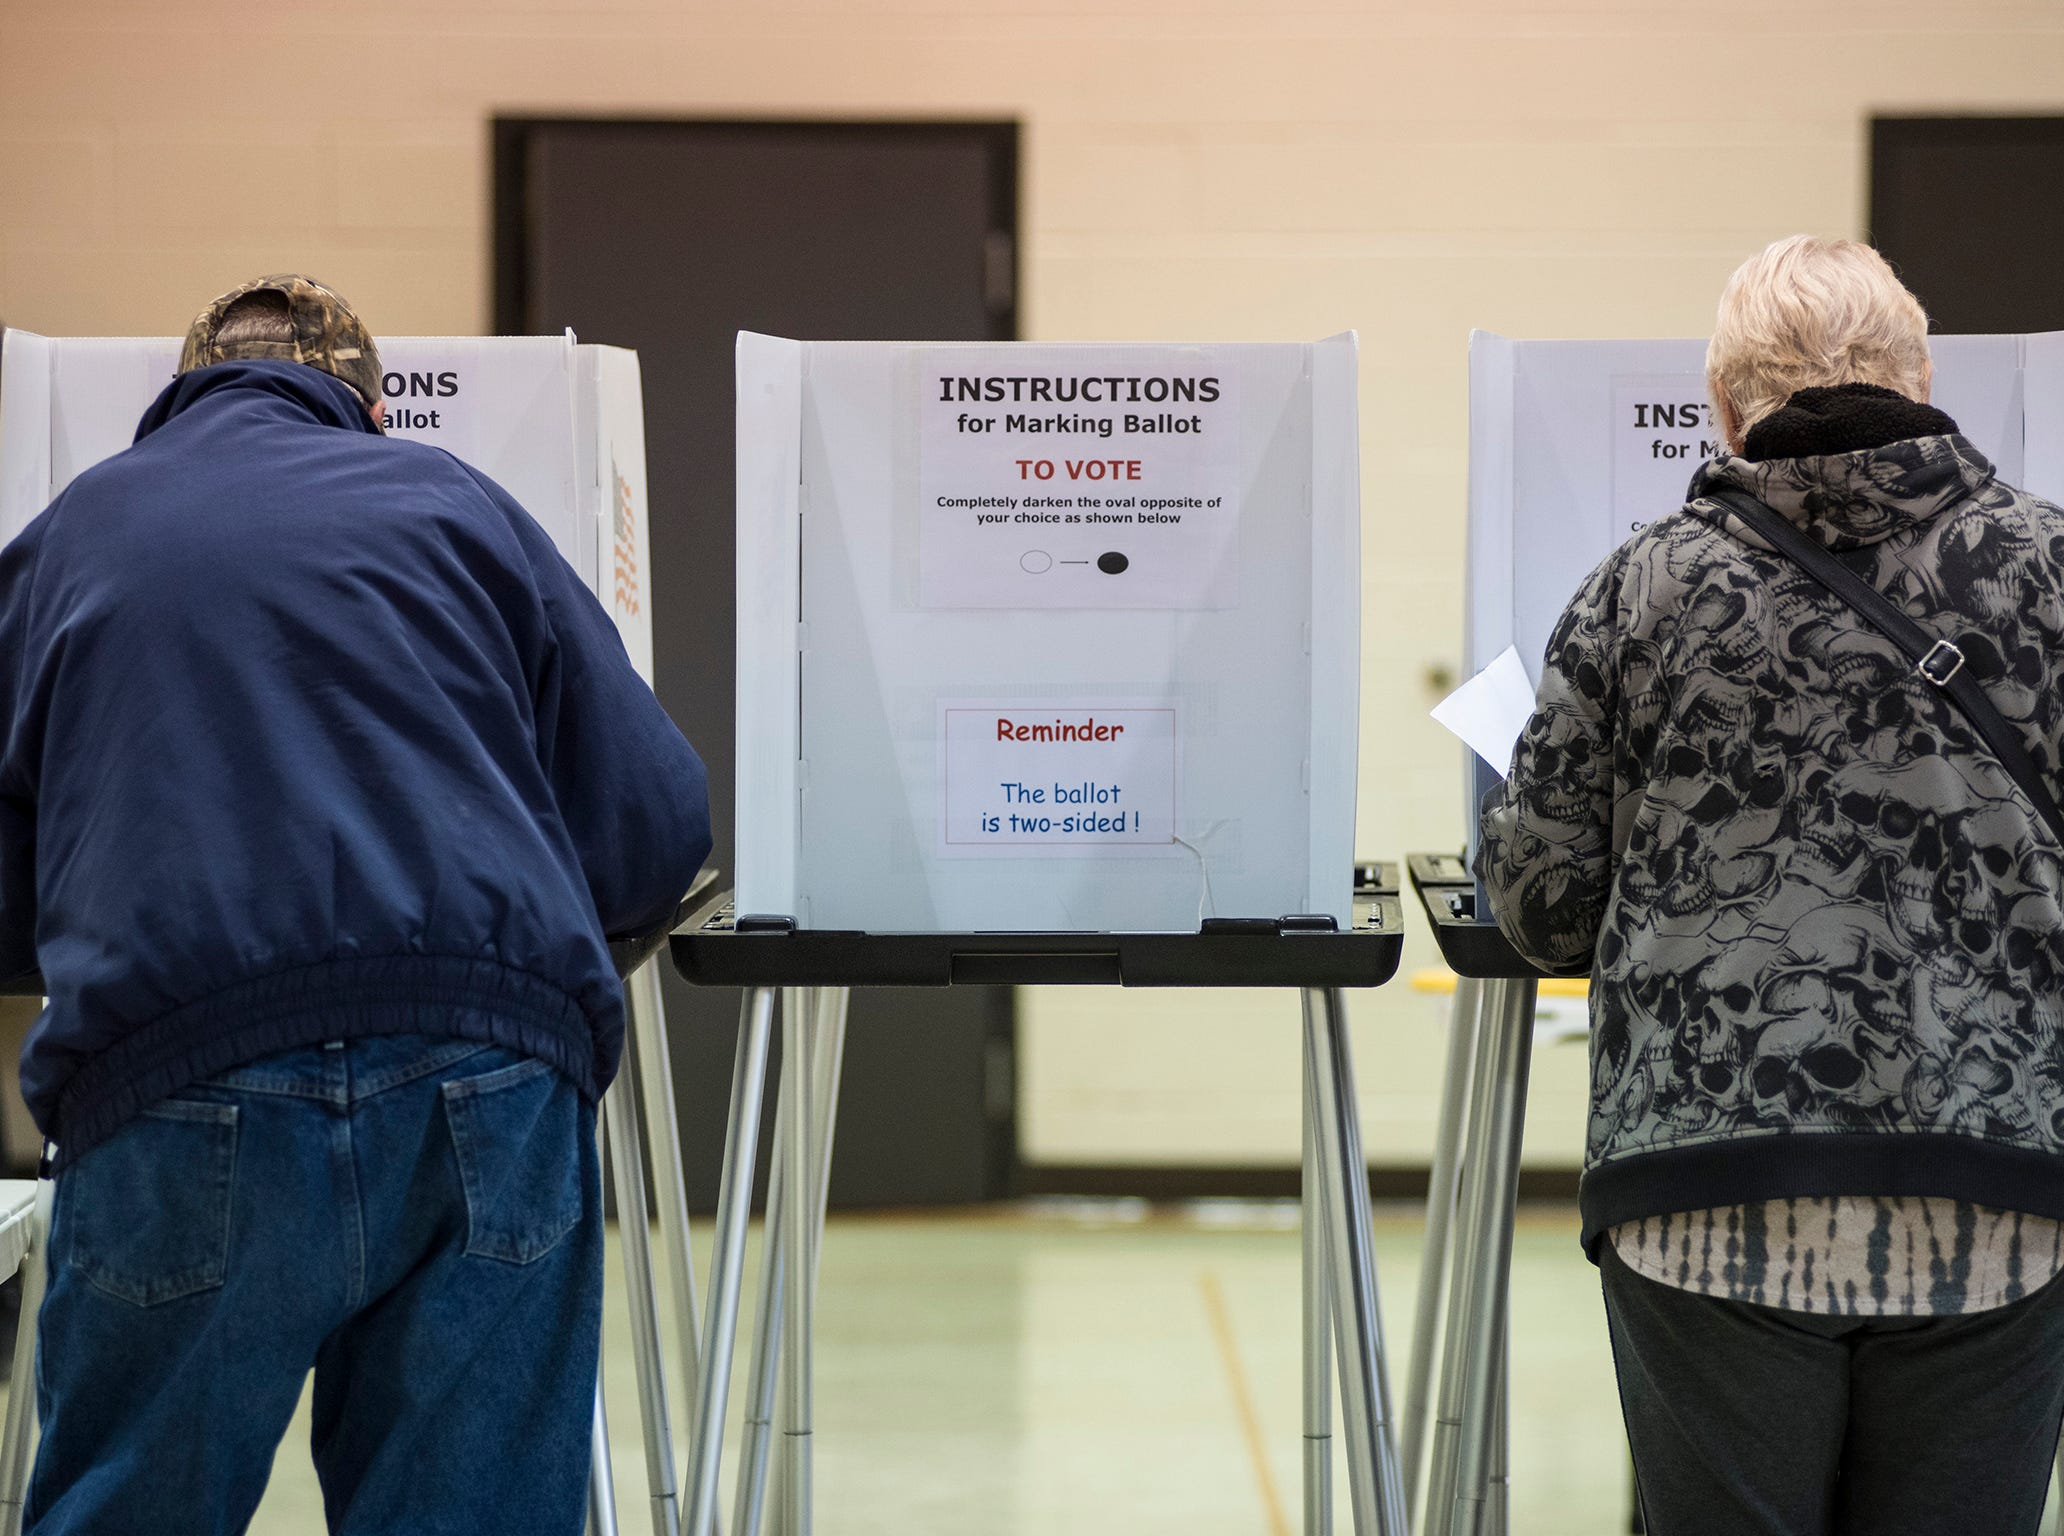 Voters in precinct 6 fill out their ballots at First United Methodist Church in Port Huron during mid-term elections Tuesday, Nov. 6, 2018.